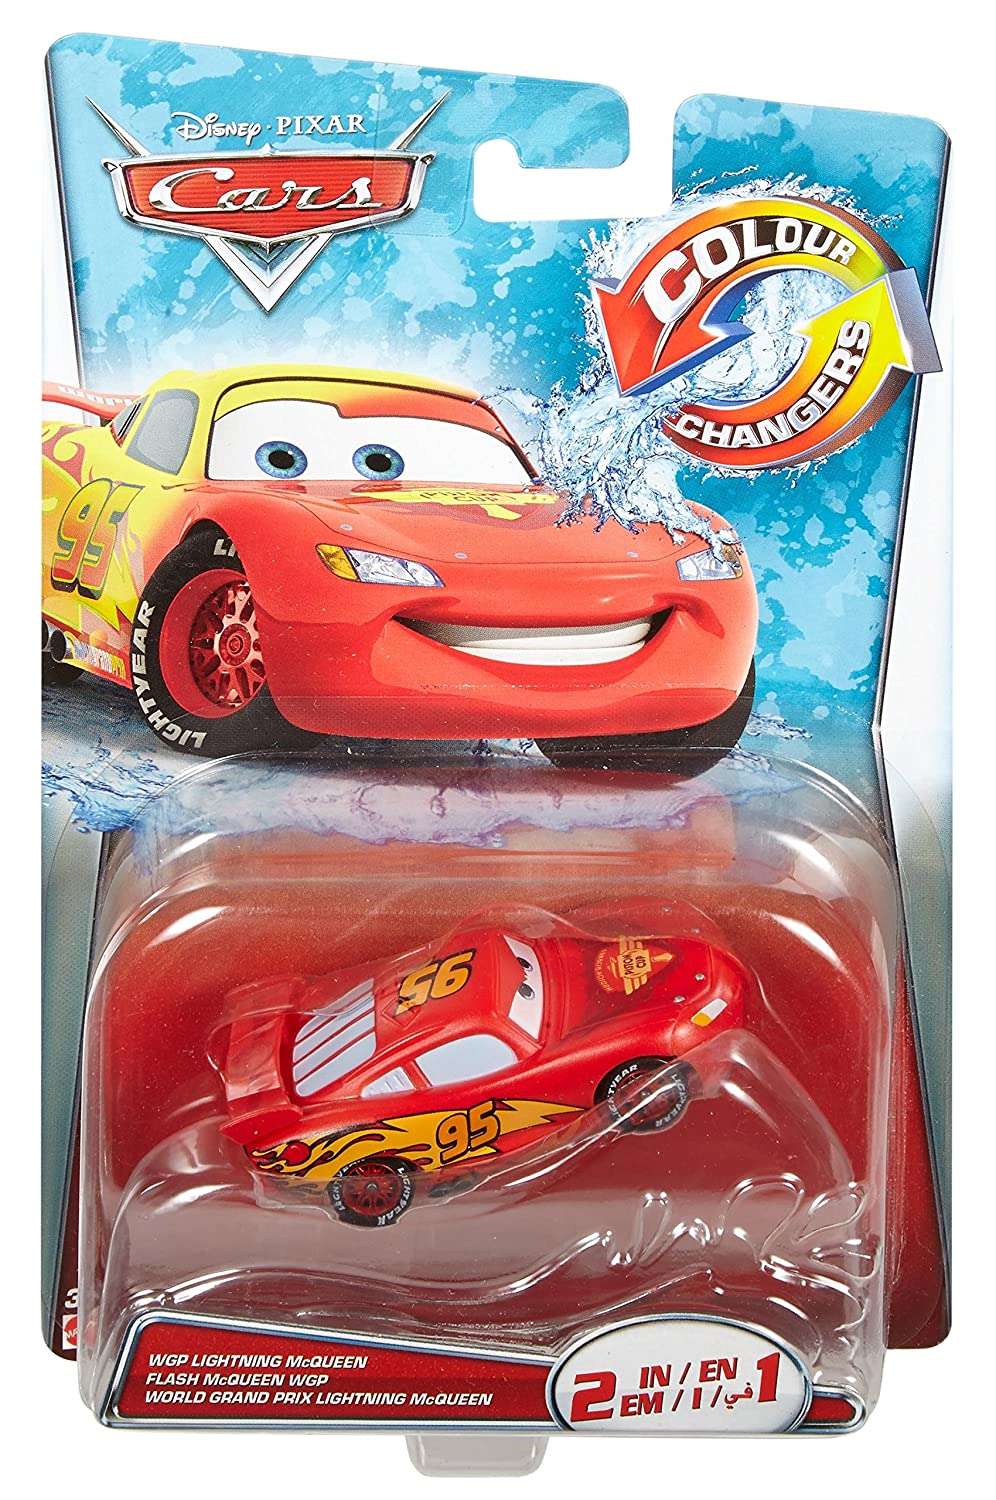 amazoncom disneypixar cars color changer lightning mcqueen red to yellow vehicle toys games - Mcqueen Flash Mcqueen